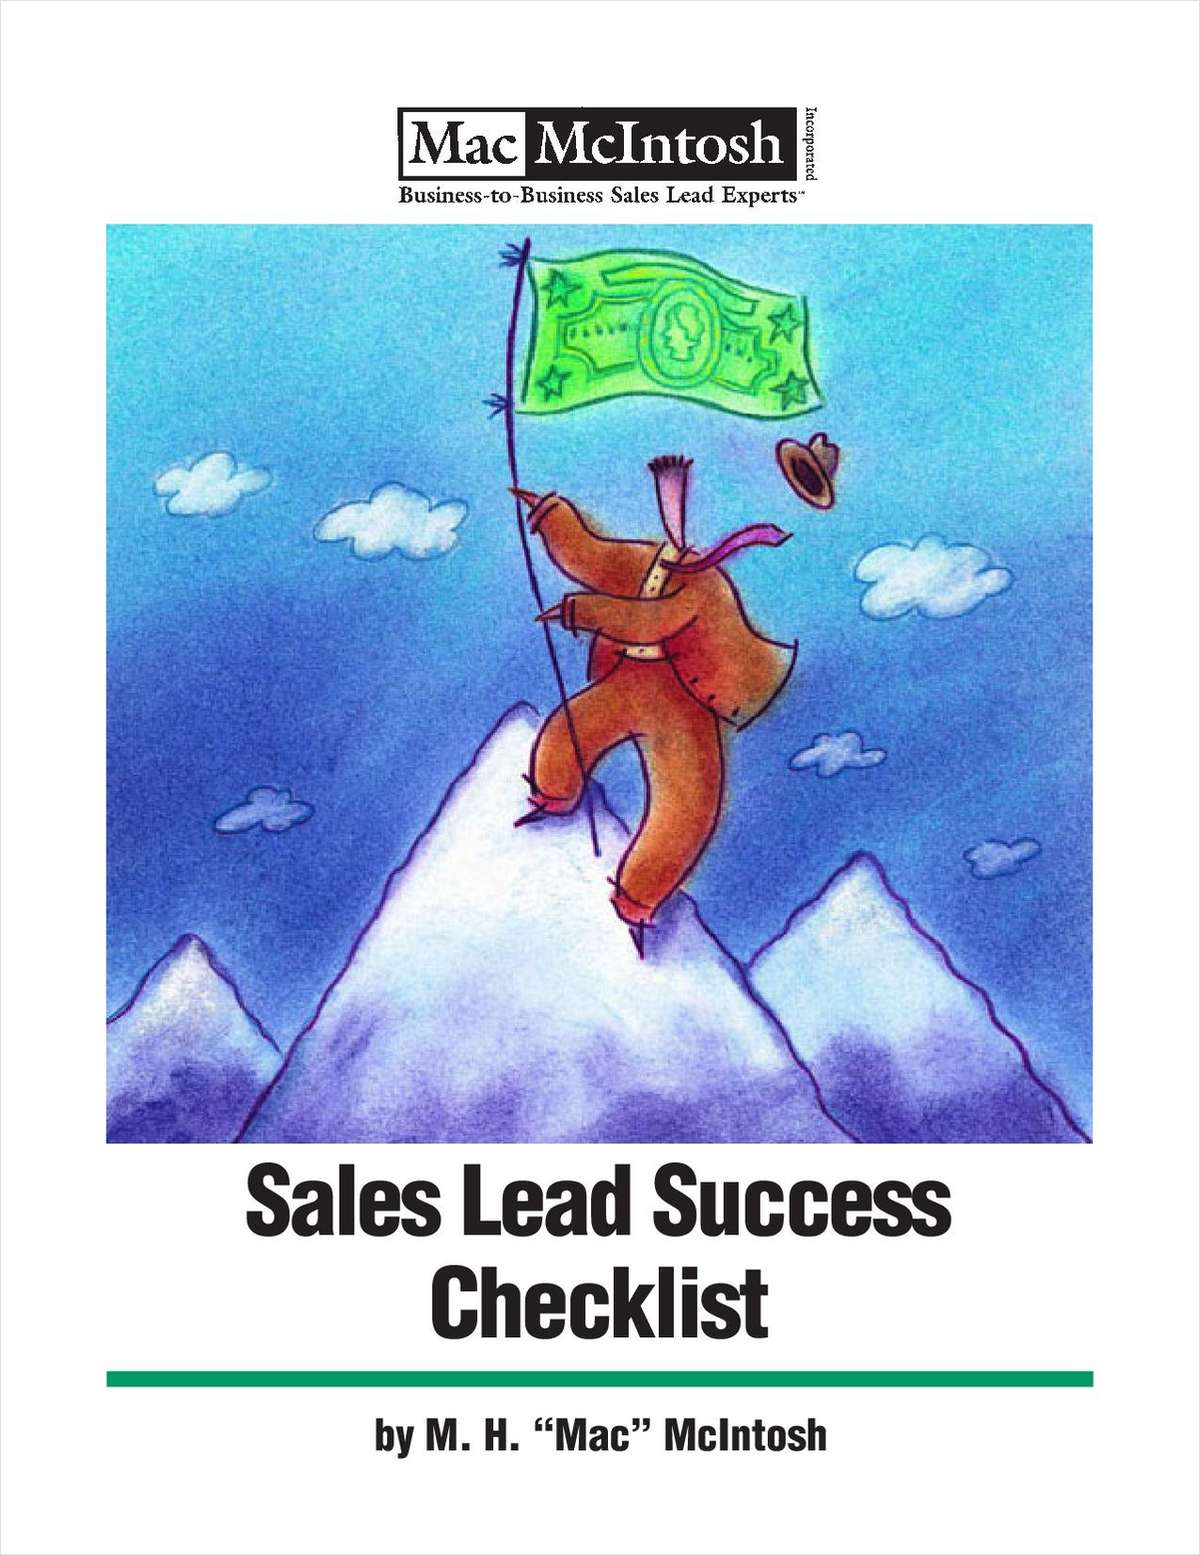 Technology B2B Sales Lead Success Checklist